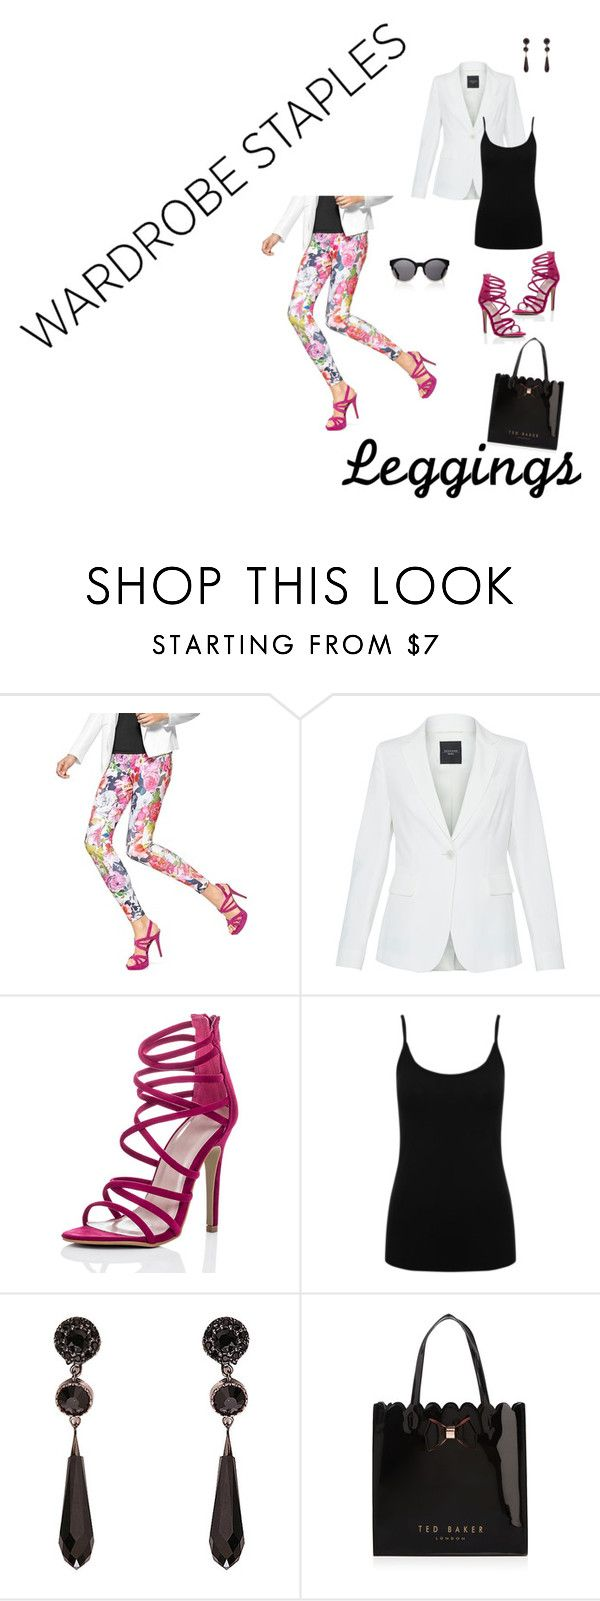 """Untitled #52"" by brandikw on Polyvore featuring Hue, Weekend Max Mara, M&Co, Givenchy, Kerr®, Ted Baker, Leggings and WardrobeStaples"